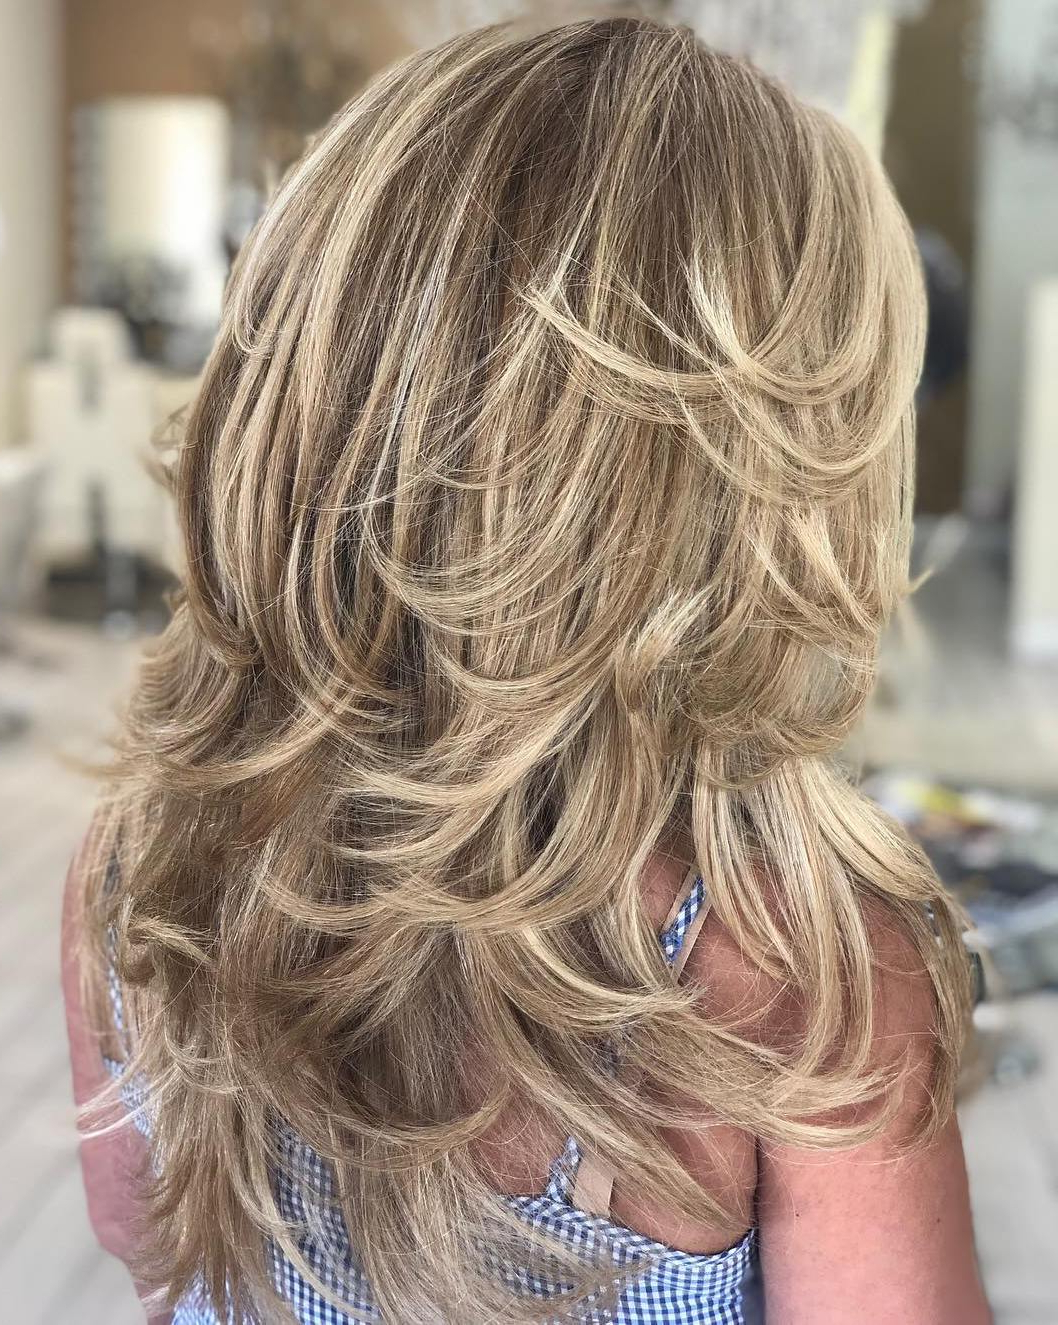 40 Trendy Hairstyles And Haircuts For Long Layered Hair To Within Trendy Anime Inspired Hairstyle With Feathered Bangs Hairstyles (View 7 of 20)